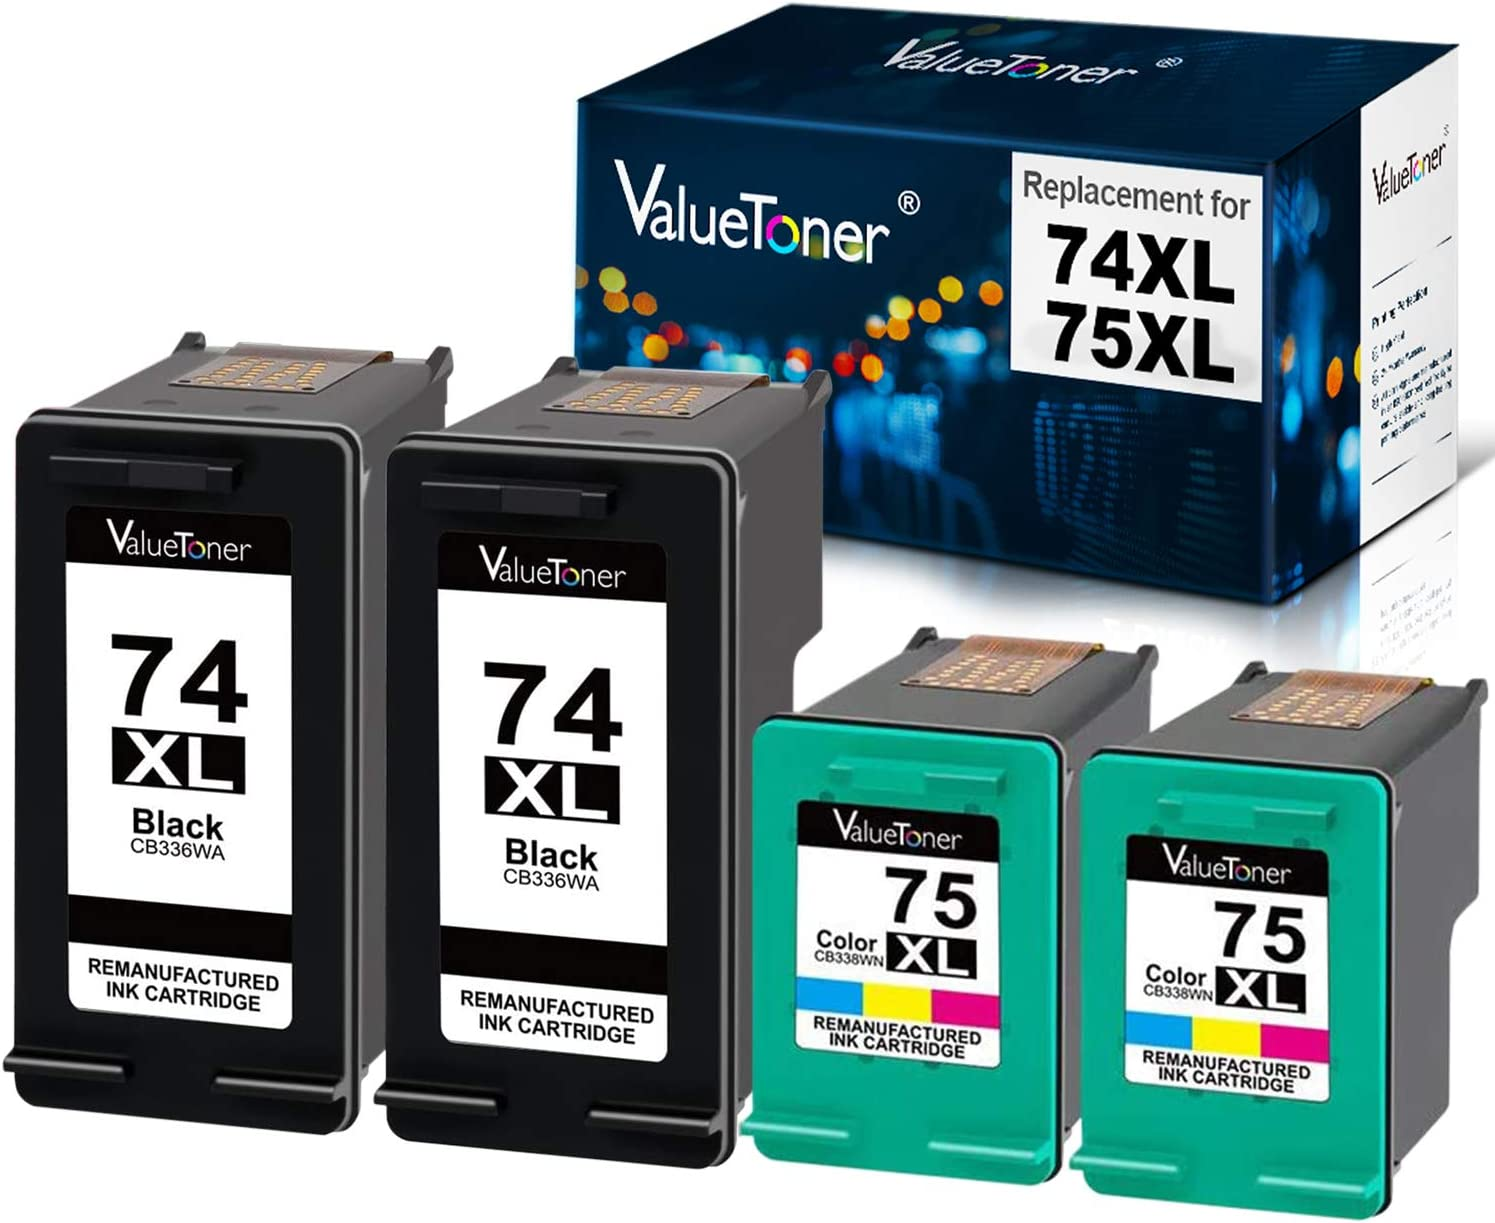 Valuetoner Remanufactured Ink Cartridge Replacement for HP 74XL & 75XL High Yield CB336WN CB338WN (2 Black, 2 Tri-Color) 4 Pack